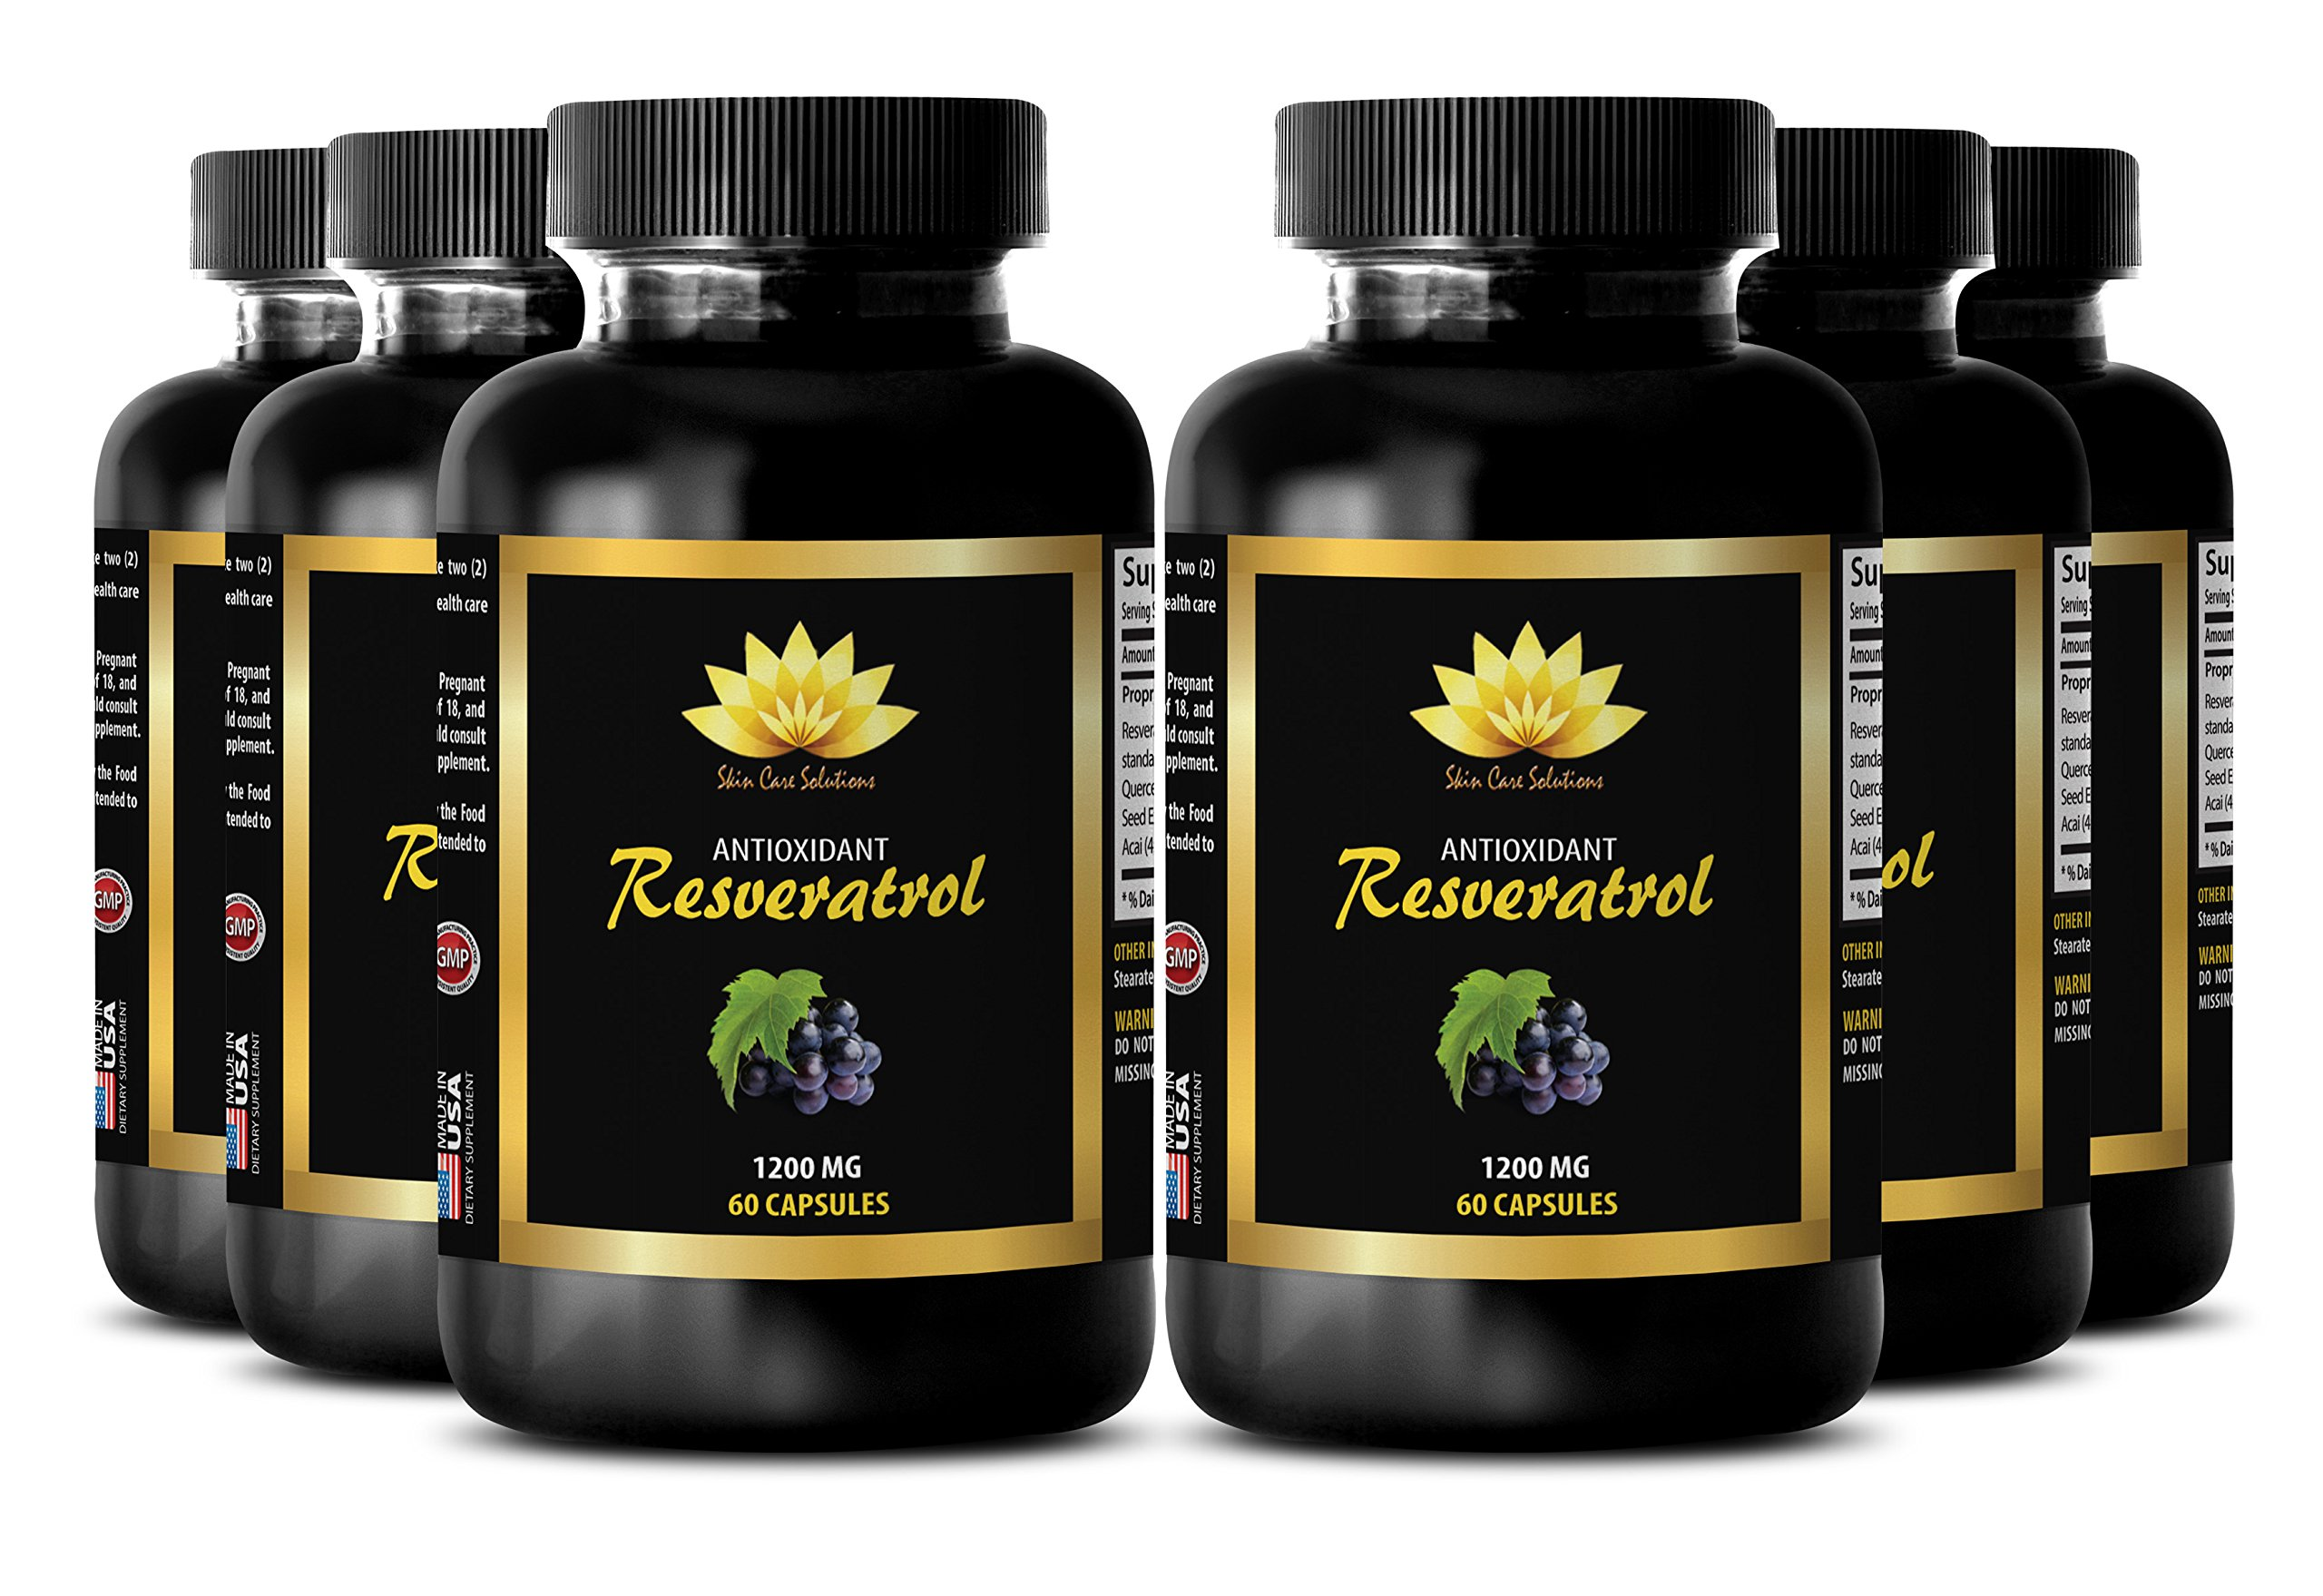 Prostate support - PURE RESVERATROL SUPPLEMENT 1200 mg - Pomegranate health - 6 Bottles 360 Capsules